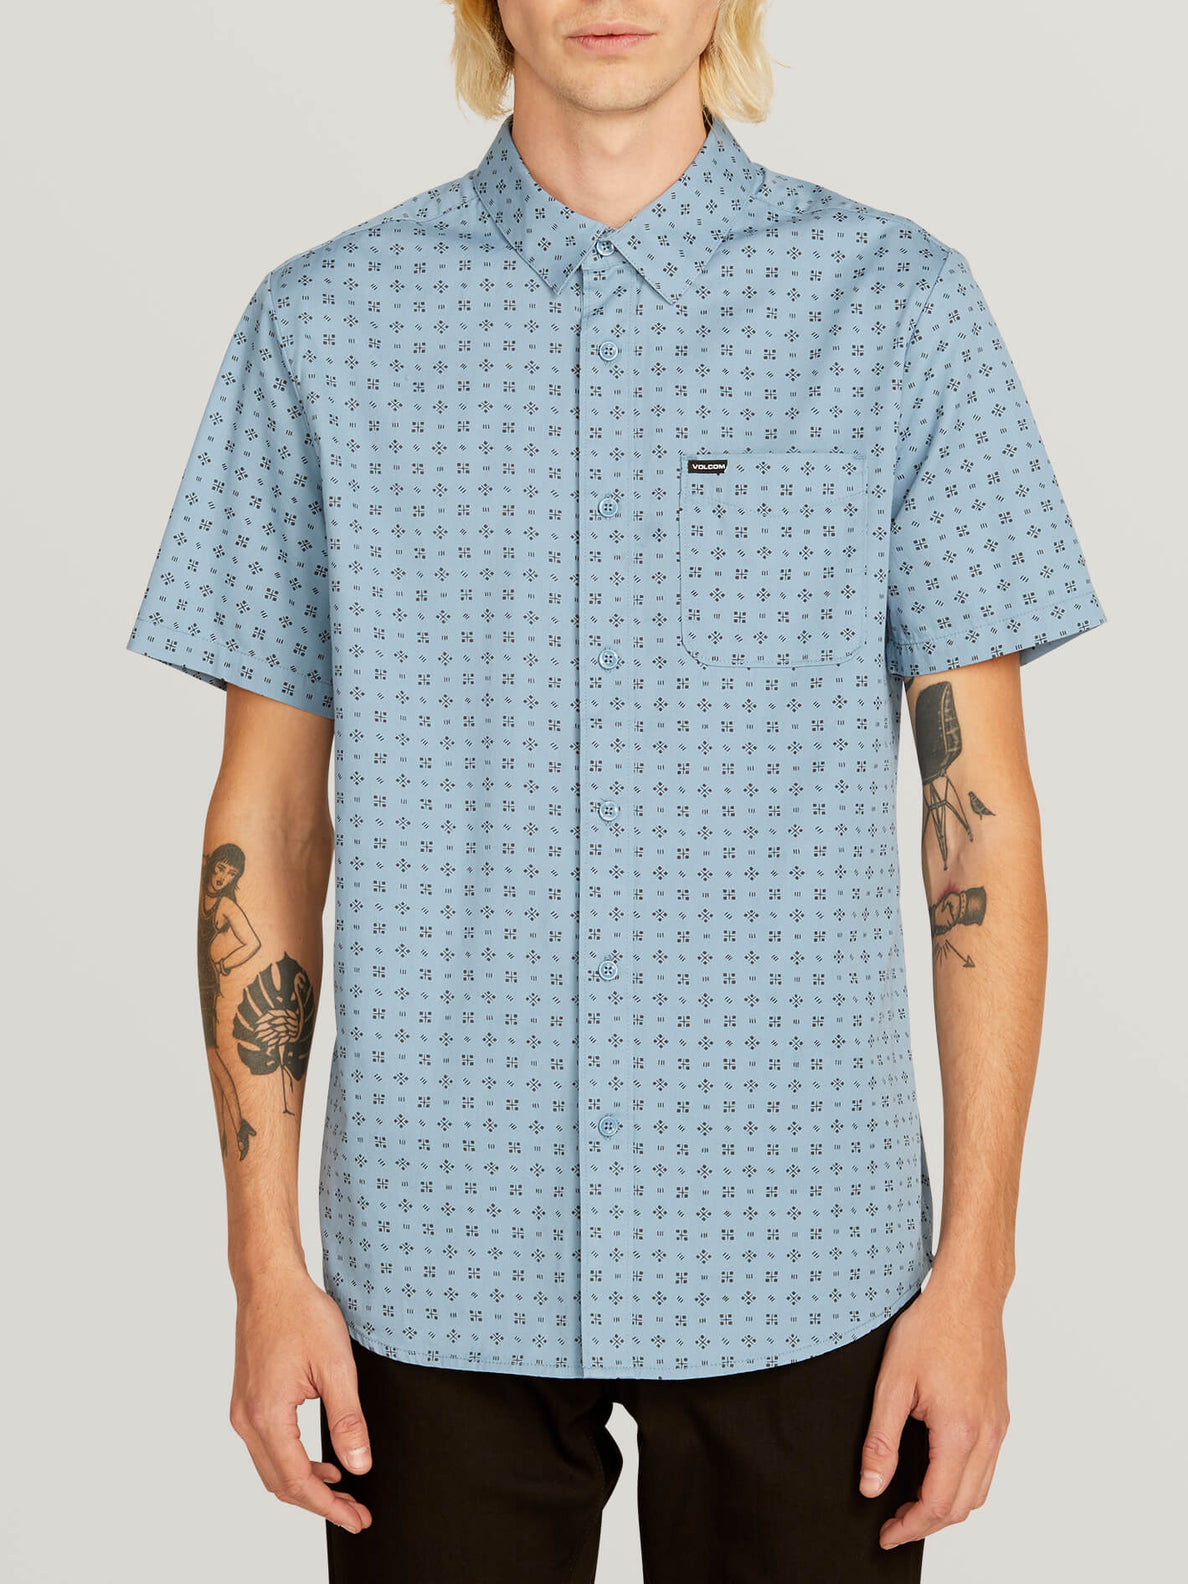 Salt Dot Short Sleeve Shirt In Vintage Blue, Front View